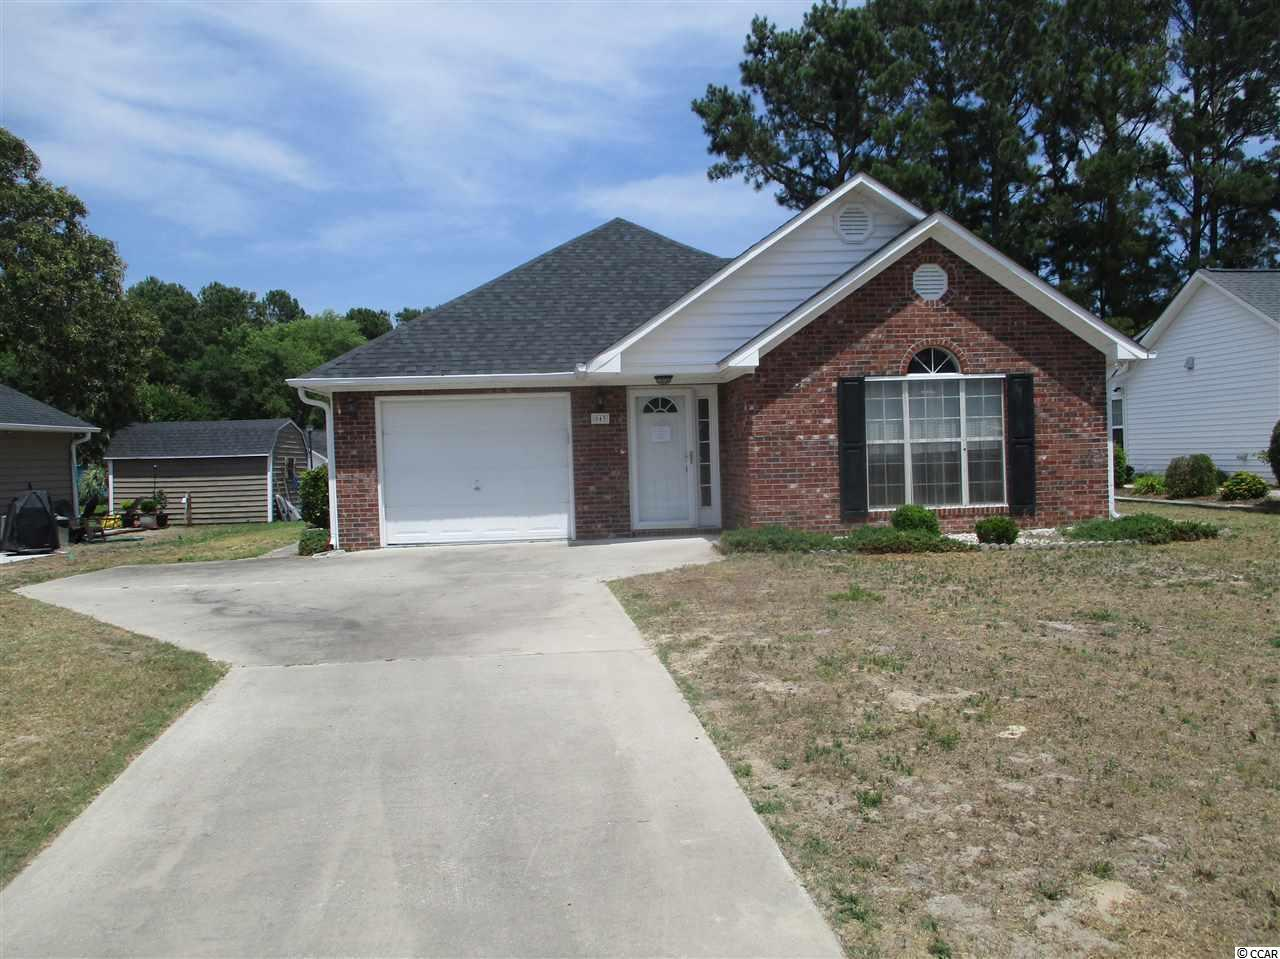 843 Holly Sands Blvd. - Photo 1